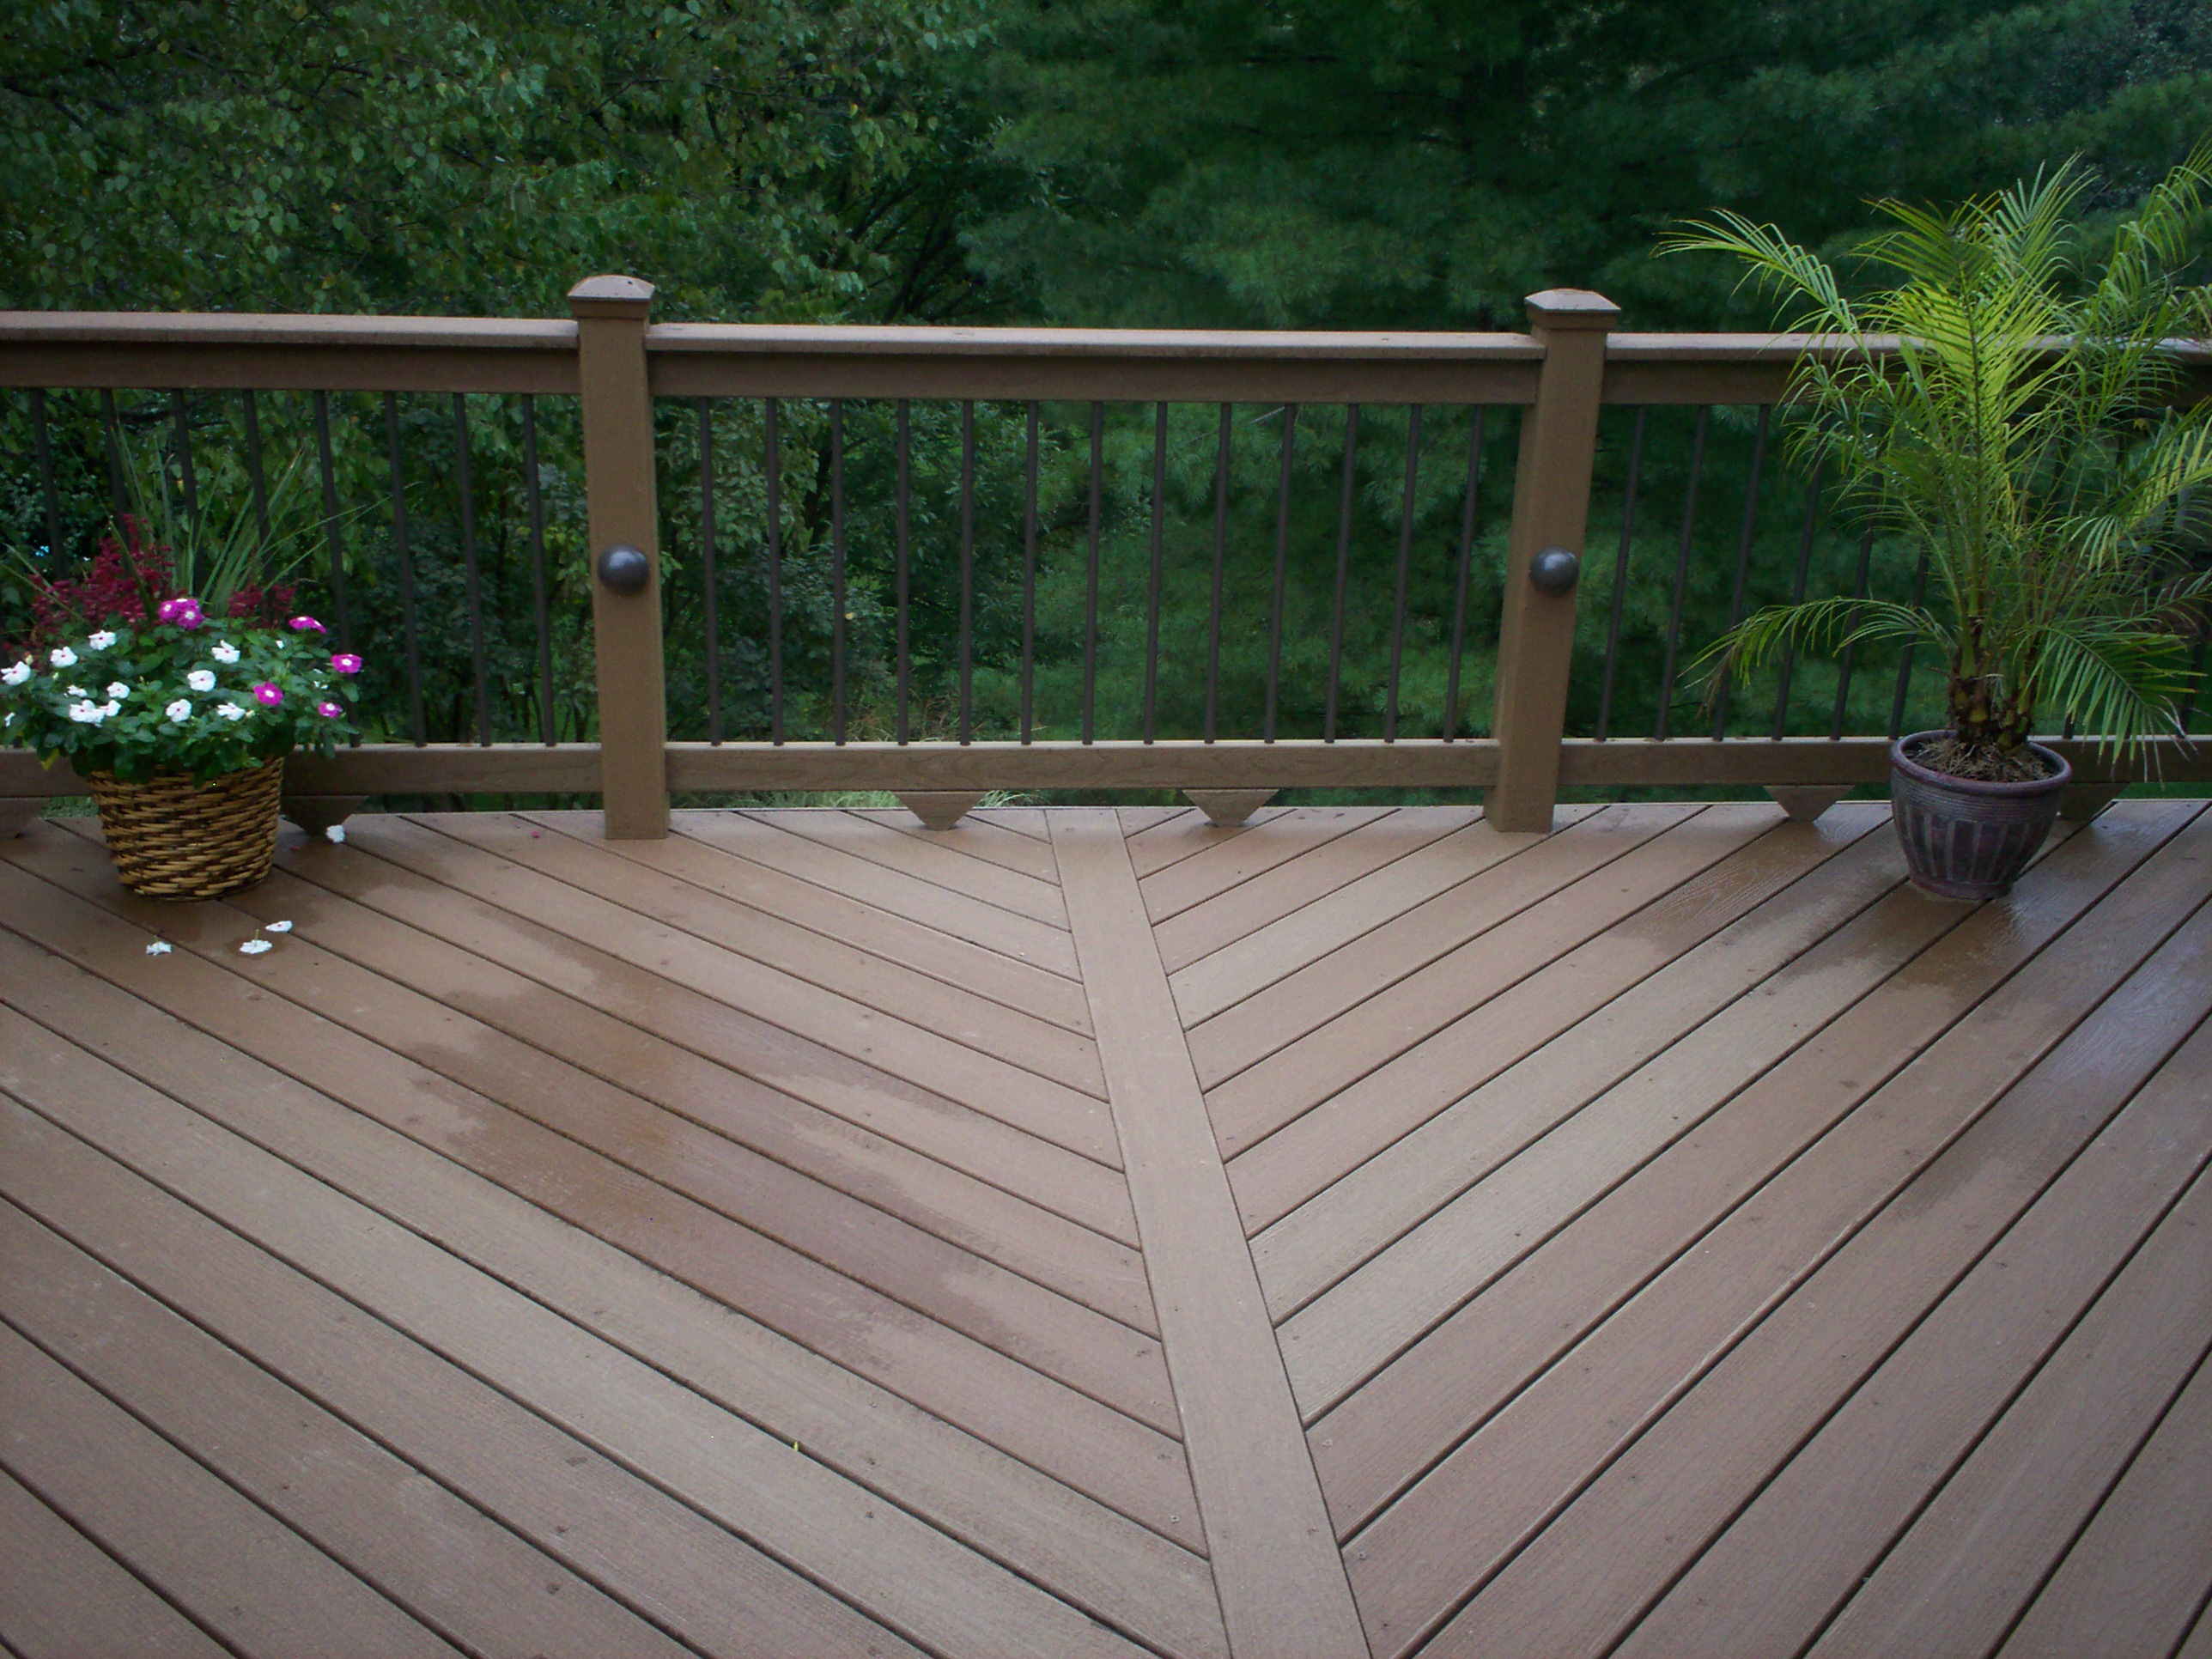 St louis deck designs with floor board patterns st for Ideas for deck designs